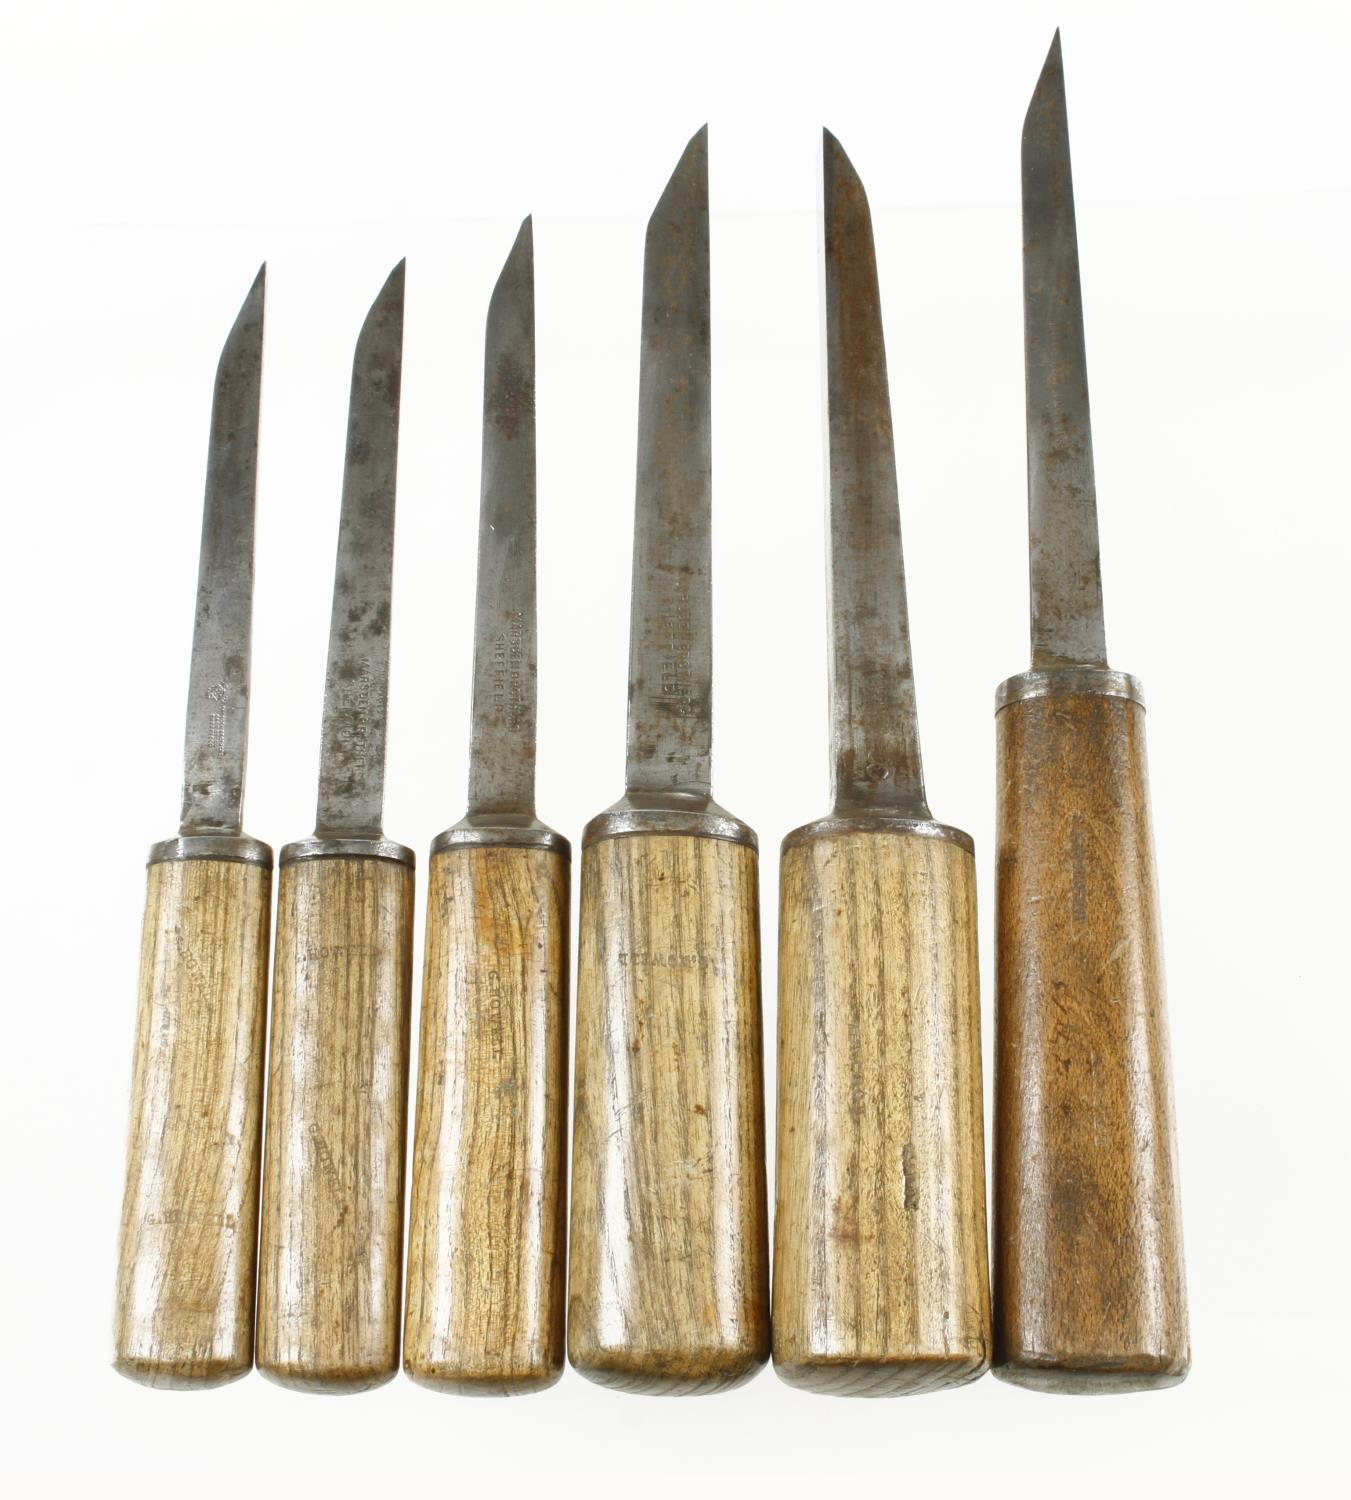 """Six mortice chisels 3/16"""" to 3/4"""" G+"""